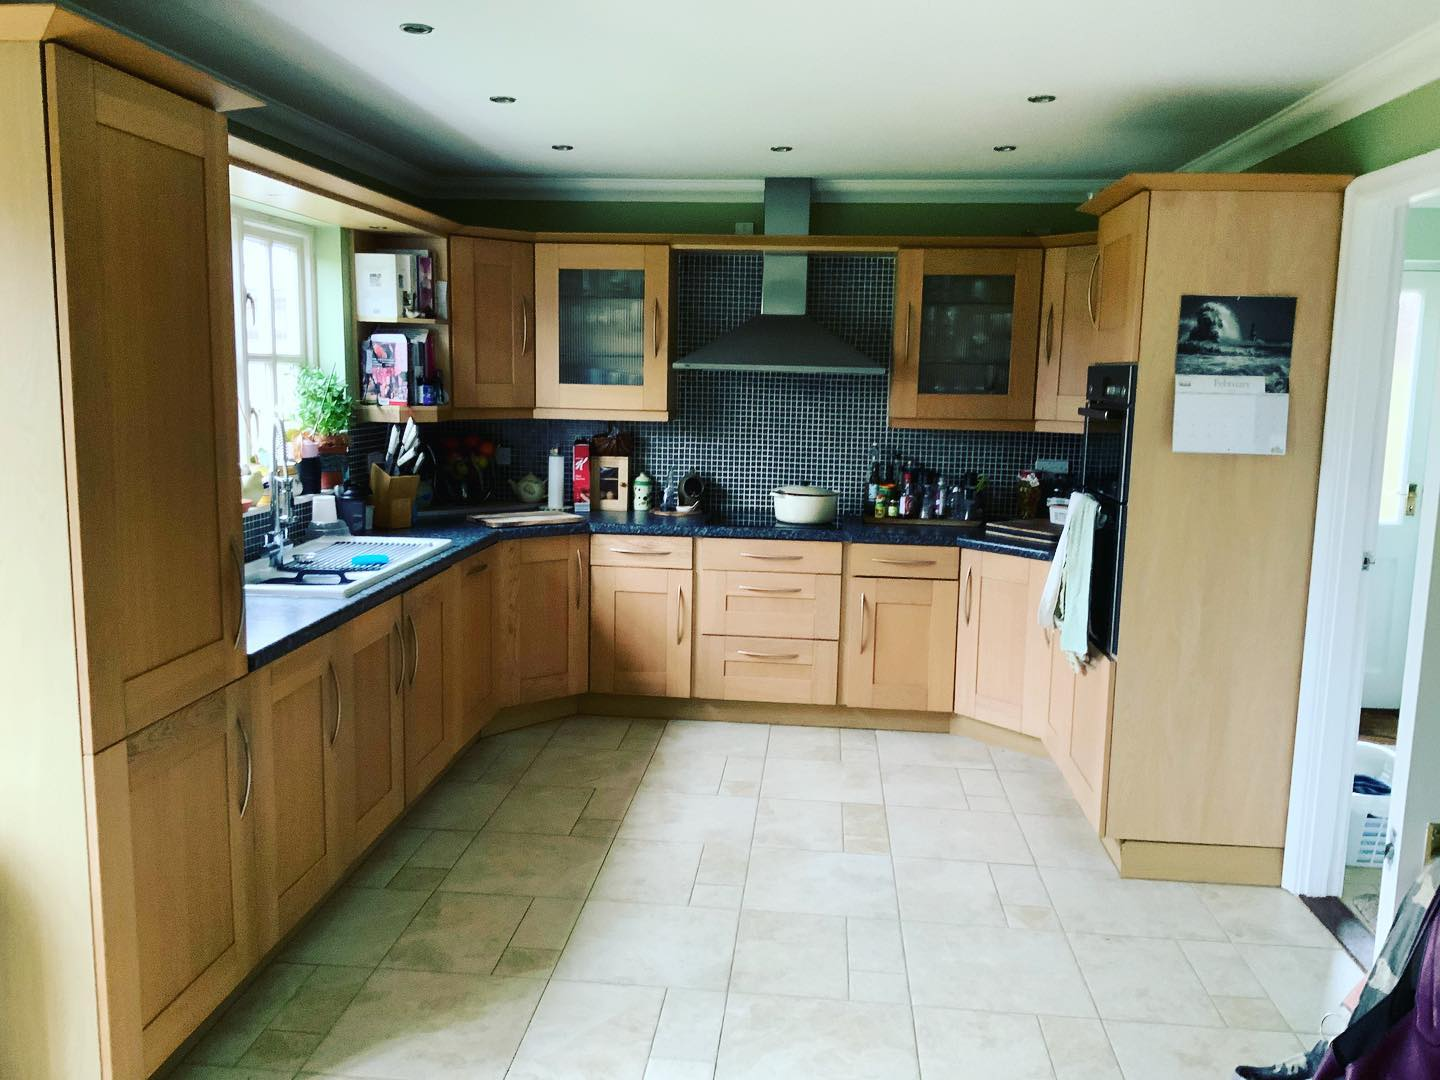 anglia-interiors-kitchen-refit-1